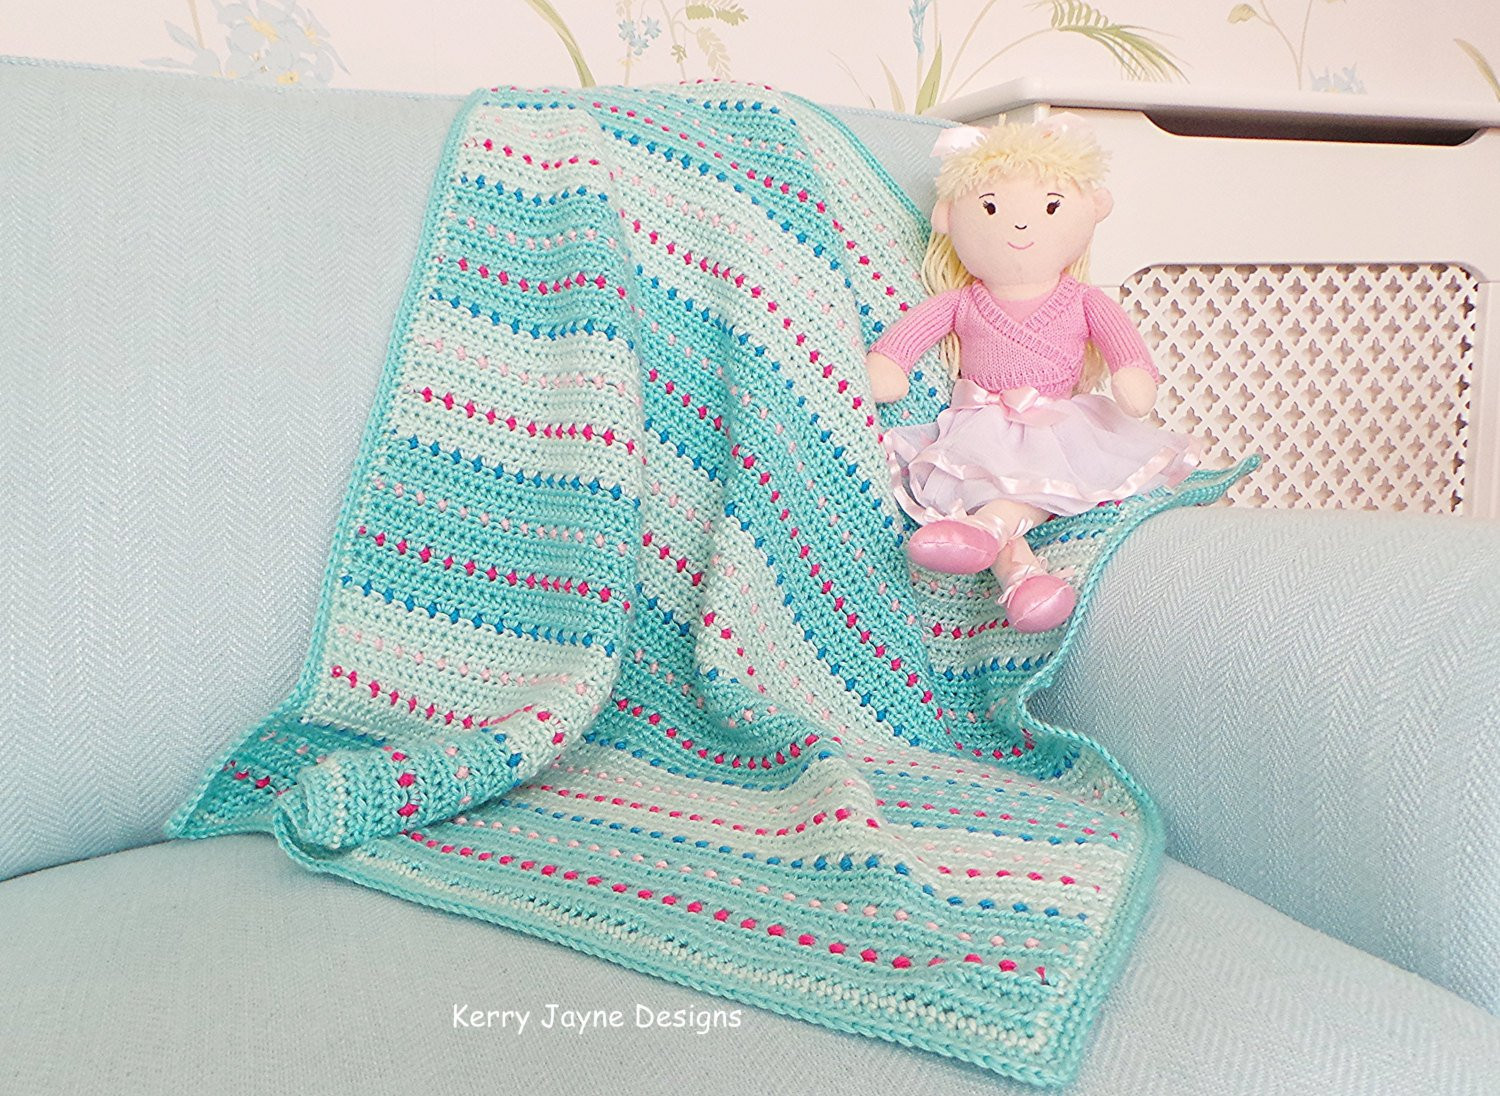 Crochet Baby Blanket Patterns for Beginners Unique Crochet Baby Blanket Pattern Dinky Dot Pattern Quick Baby Of Innovative 45 Pics Crochet Baby Blanket Patterns for Beginners